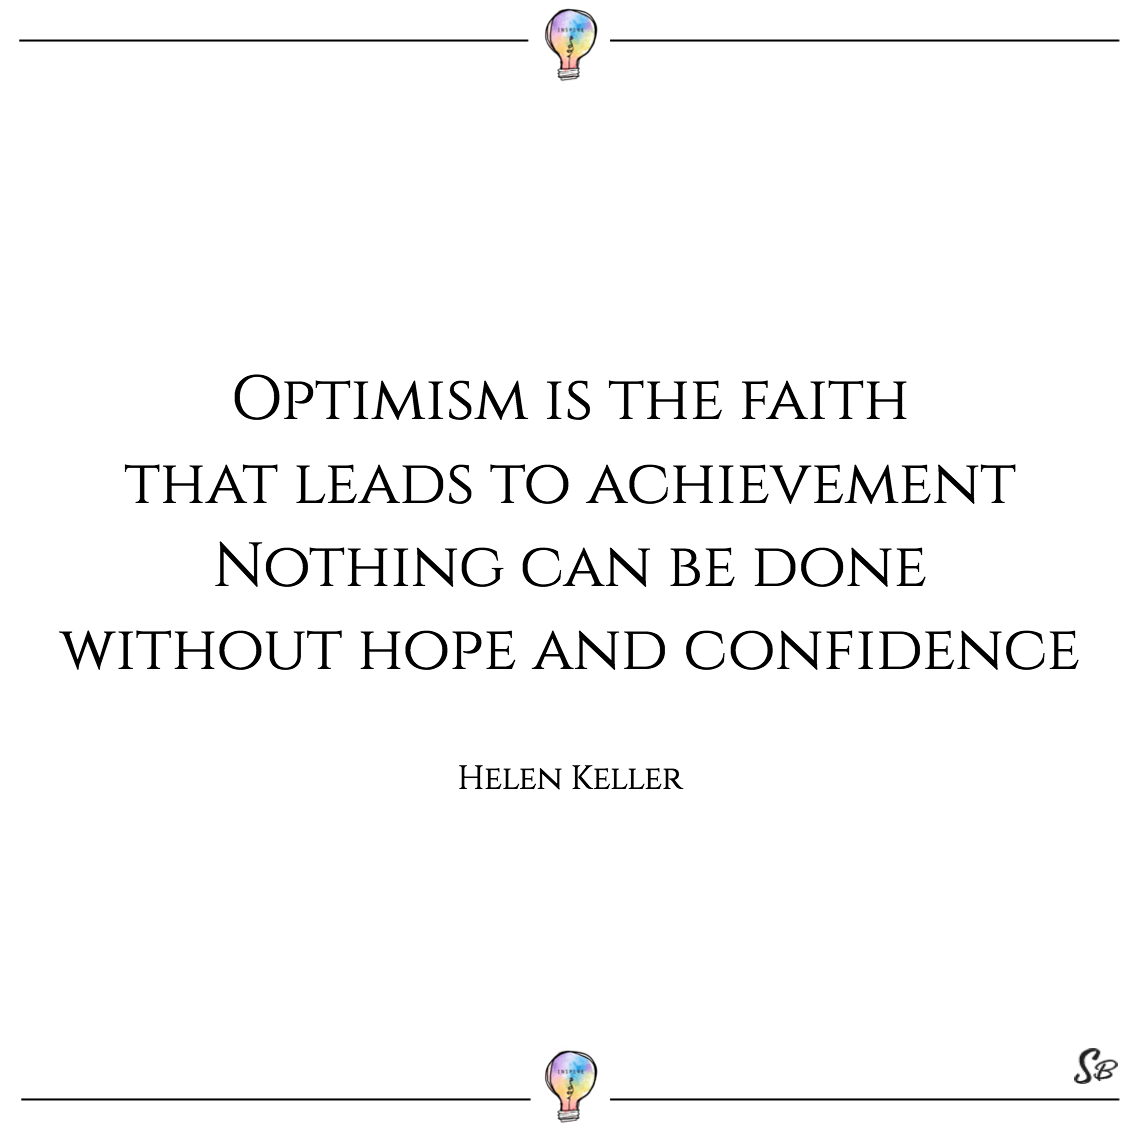 Optimism is the faith that leads to achievement nothing can be done without hope and confidence helen keller